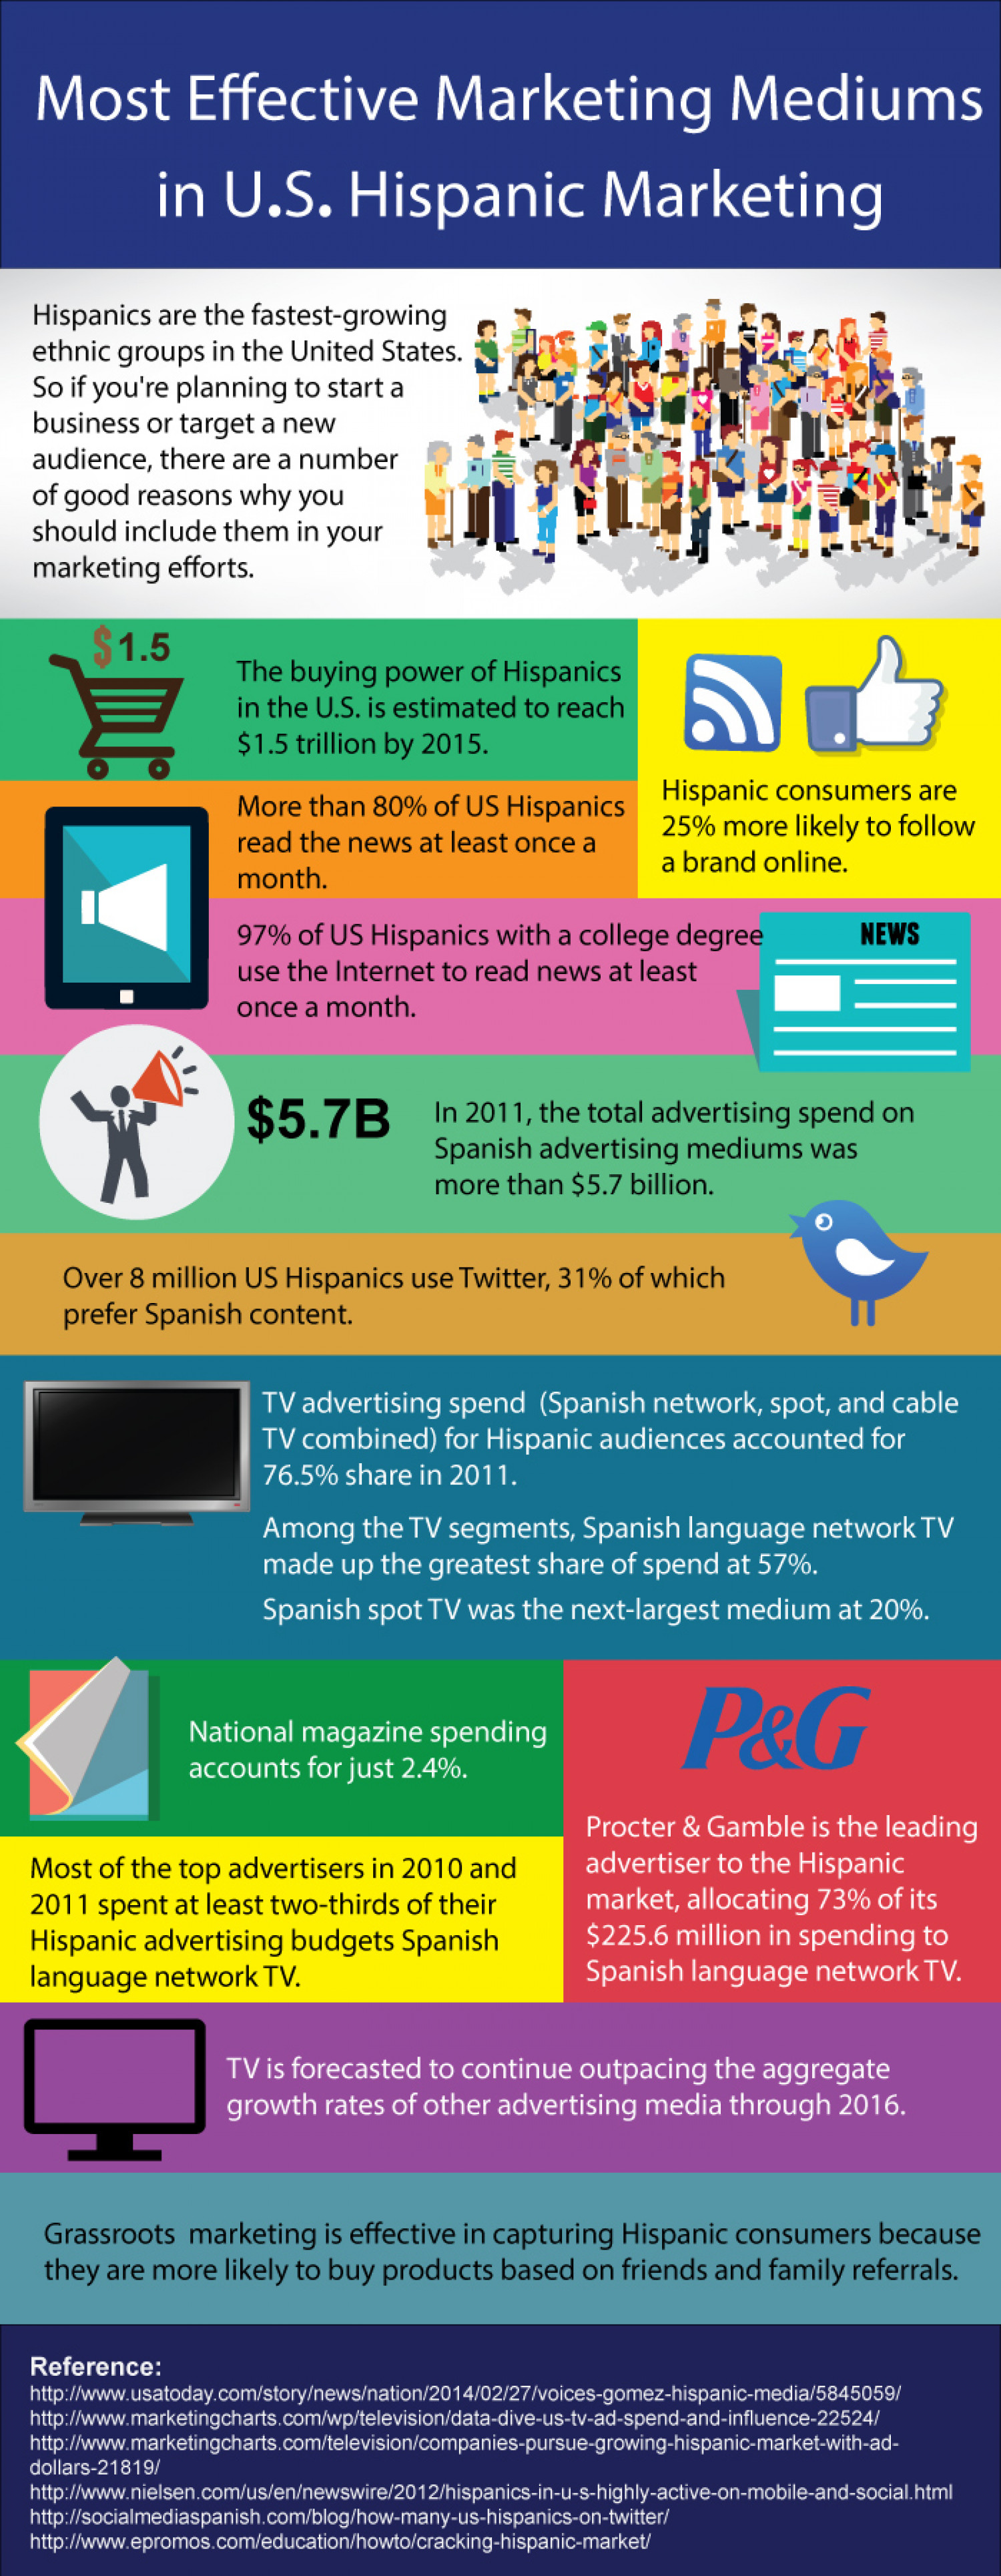 Most Effective Marketing Mediums in U.S. Hispanic Marketing Infographic